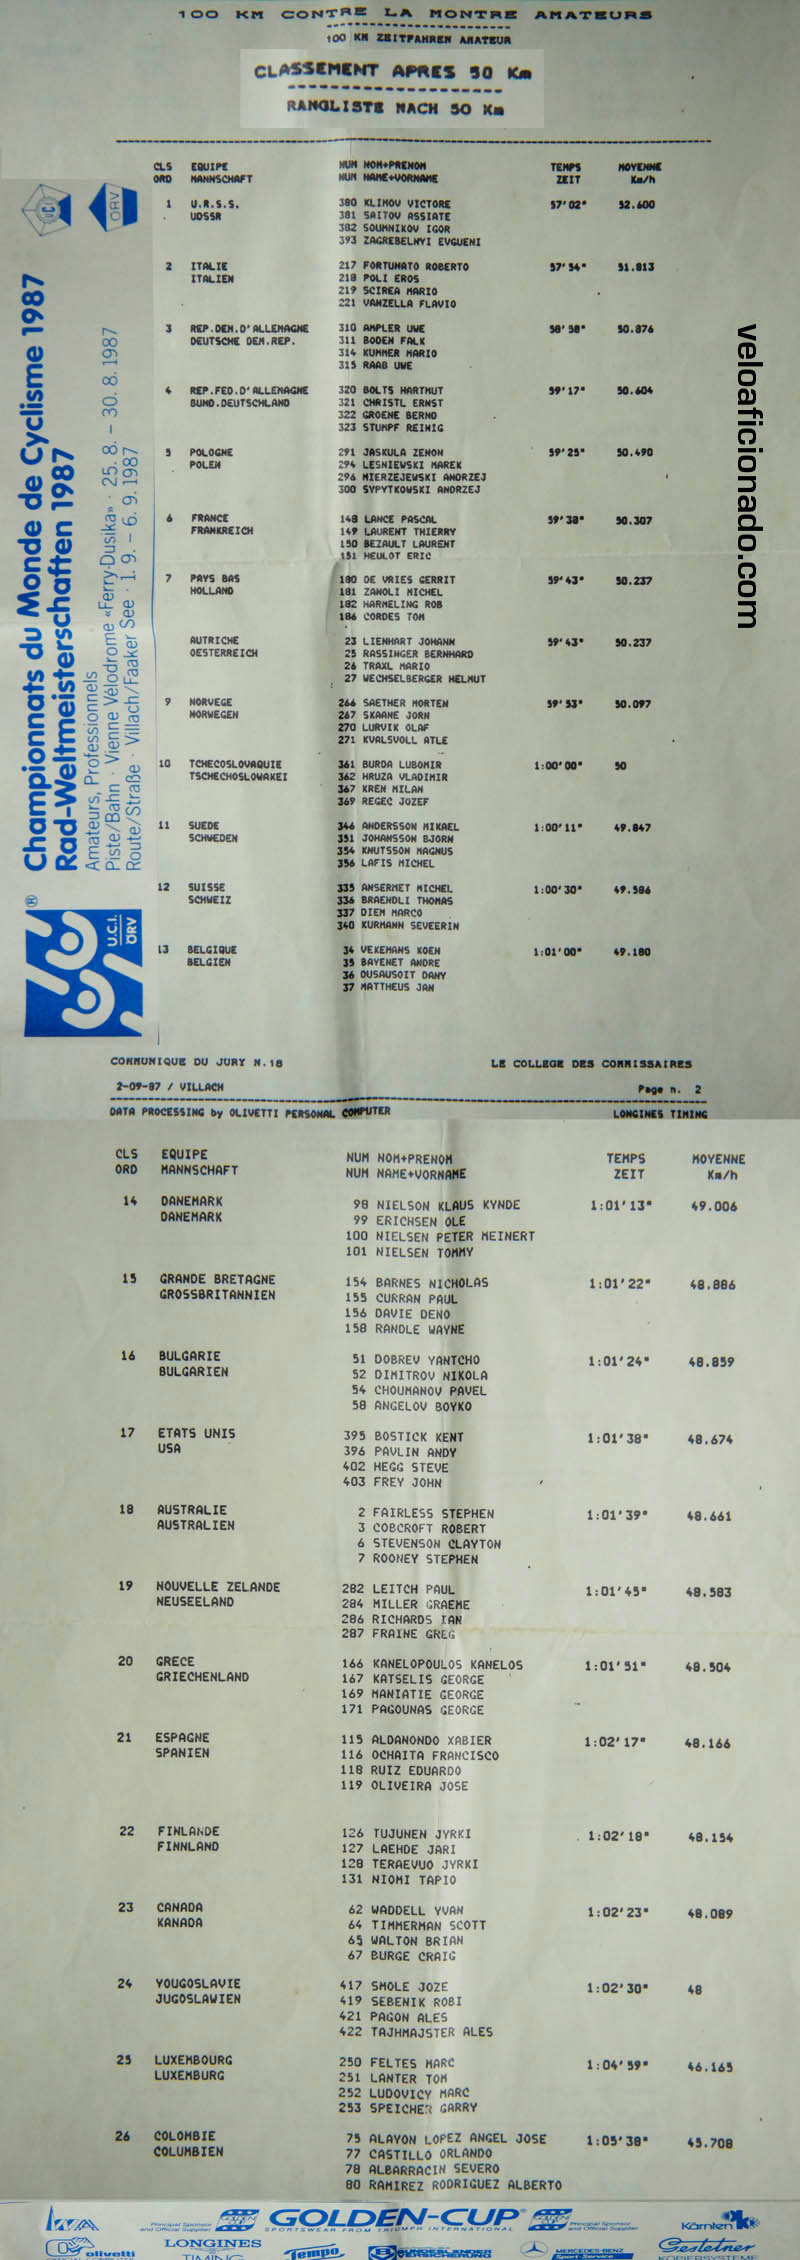 1987 UCI world cycling championships timing sheet at the 50 km halfway point for the 100 km teams time trial.